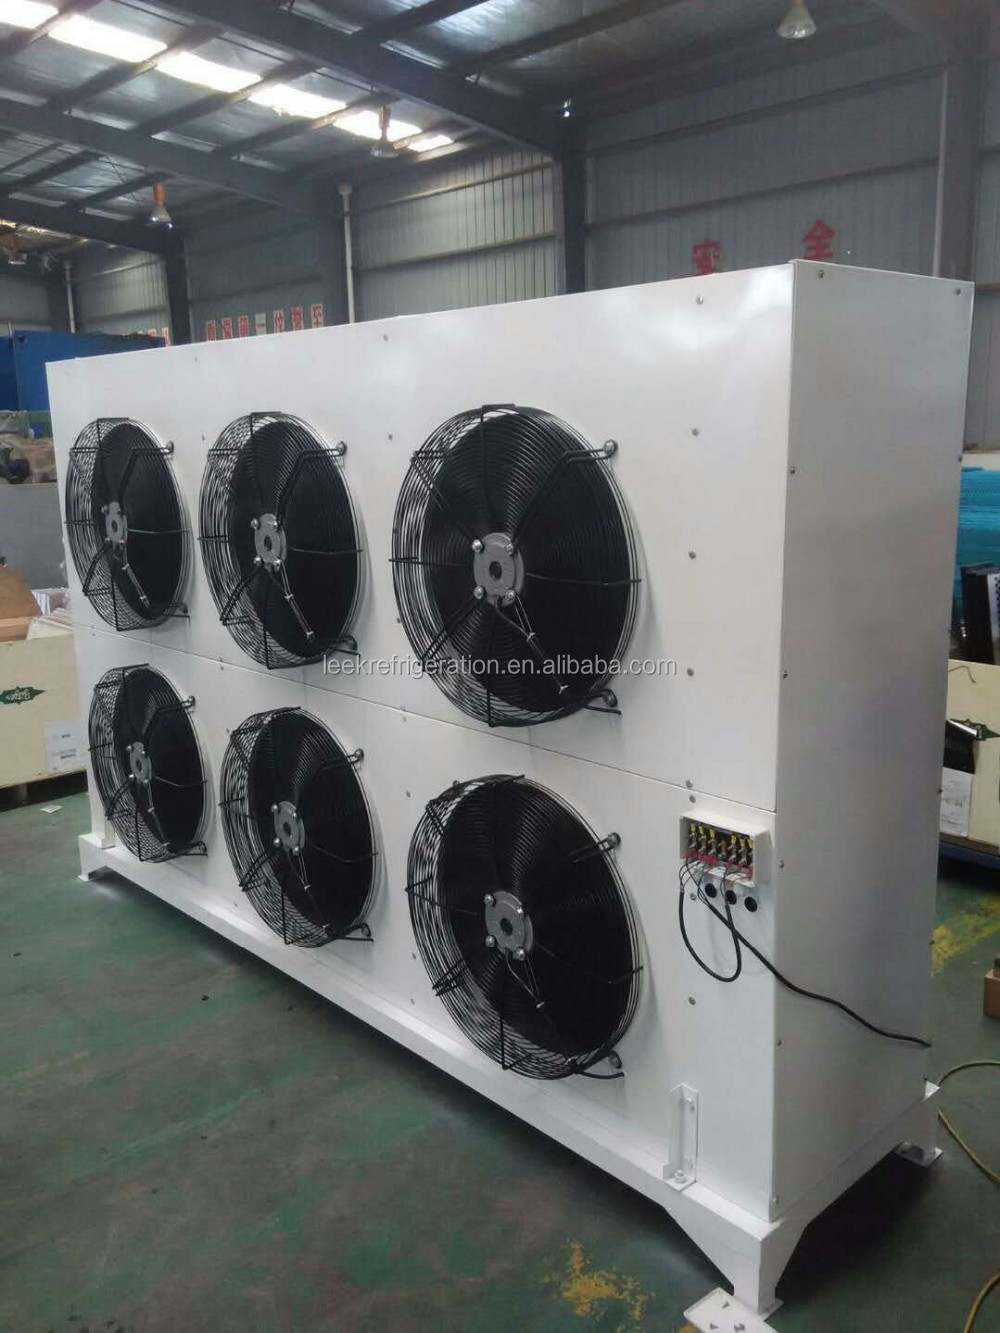 Dj400 Air Cooling Evaporator Fan Coil View Evaporator Fan